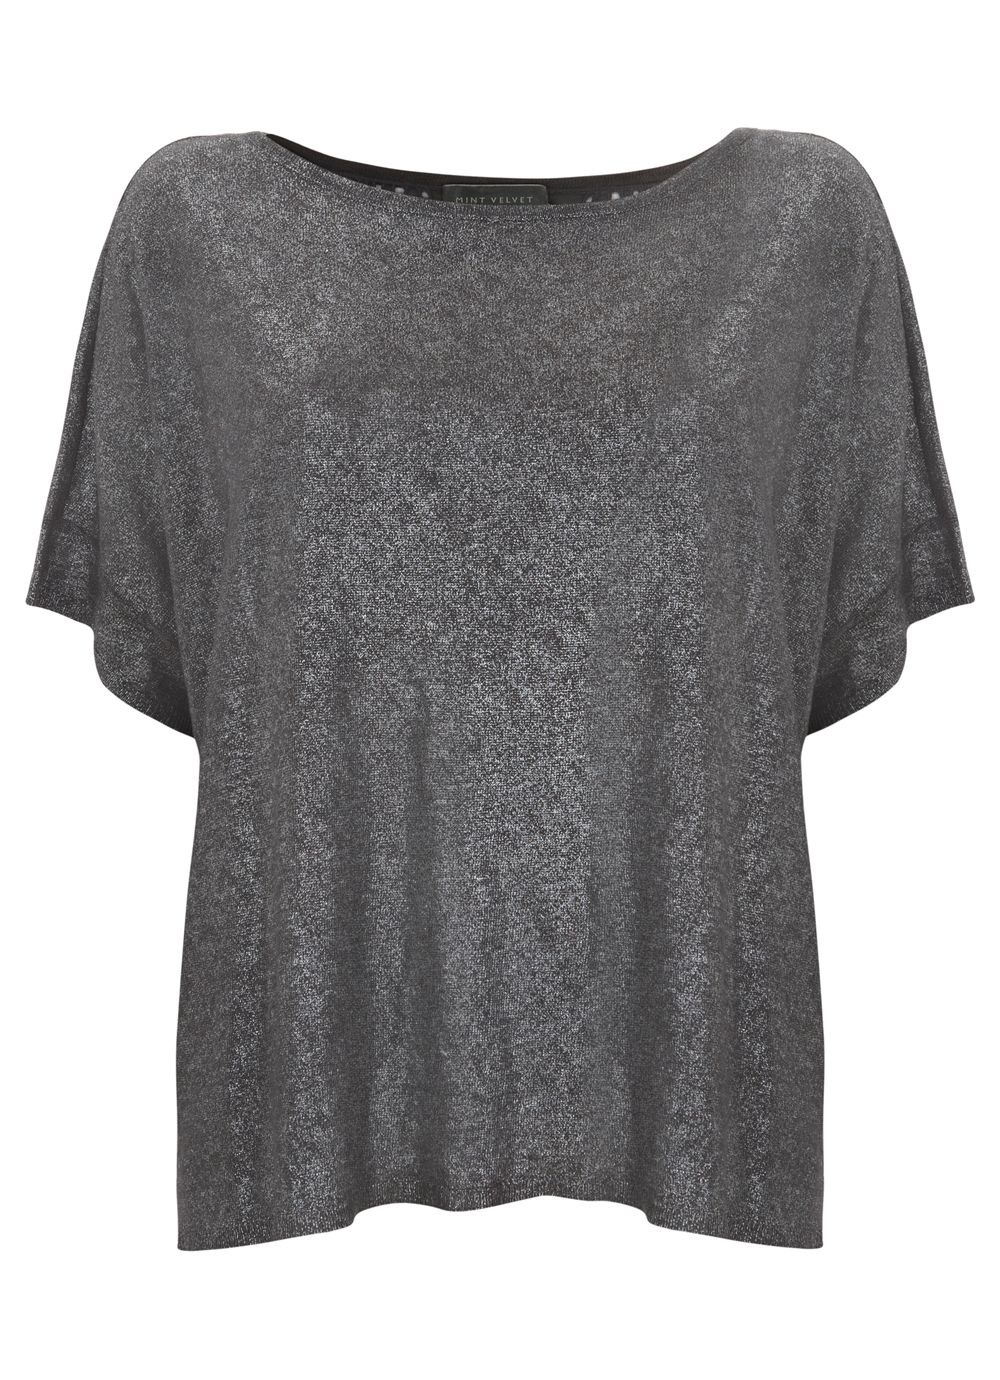 Slate foil lace back knit